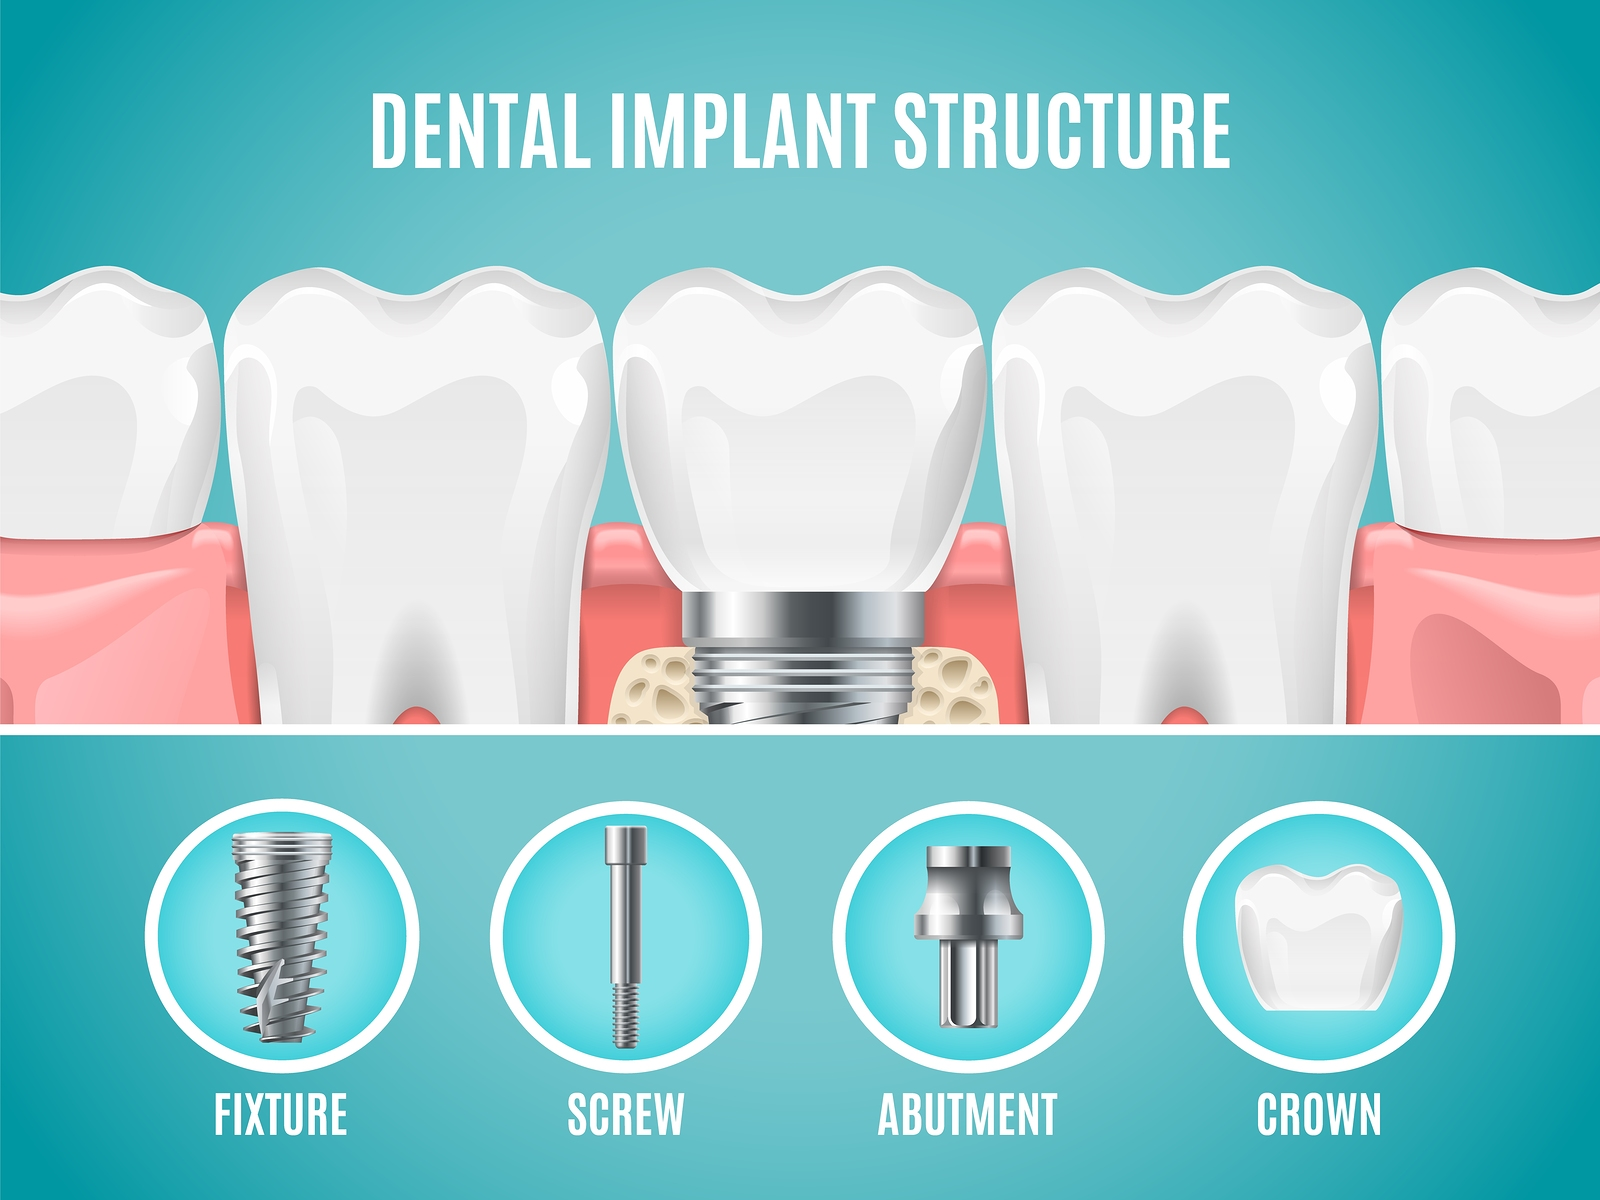 Dental implant structure.